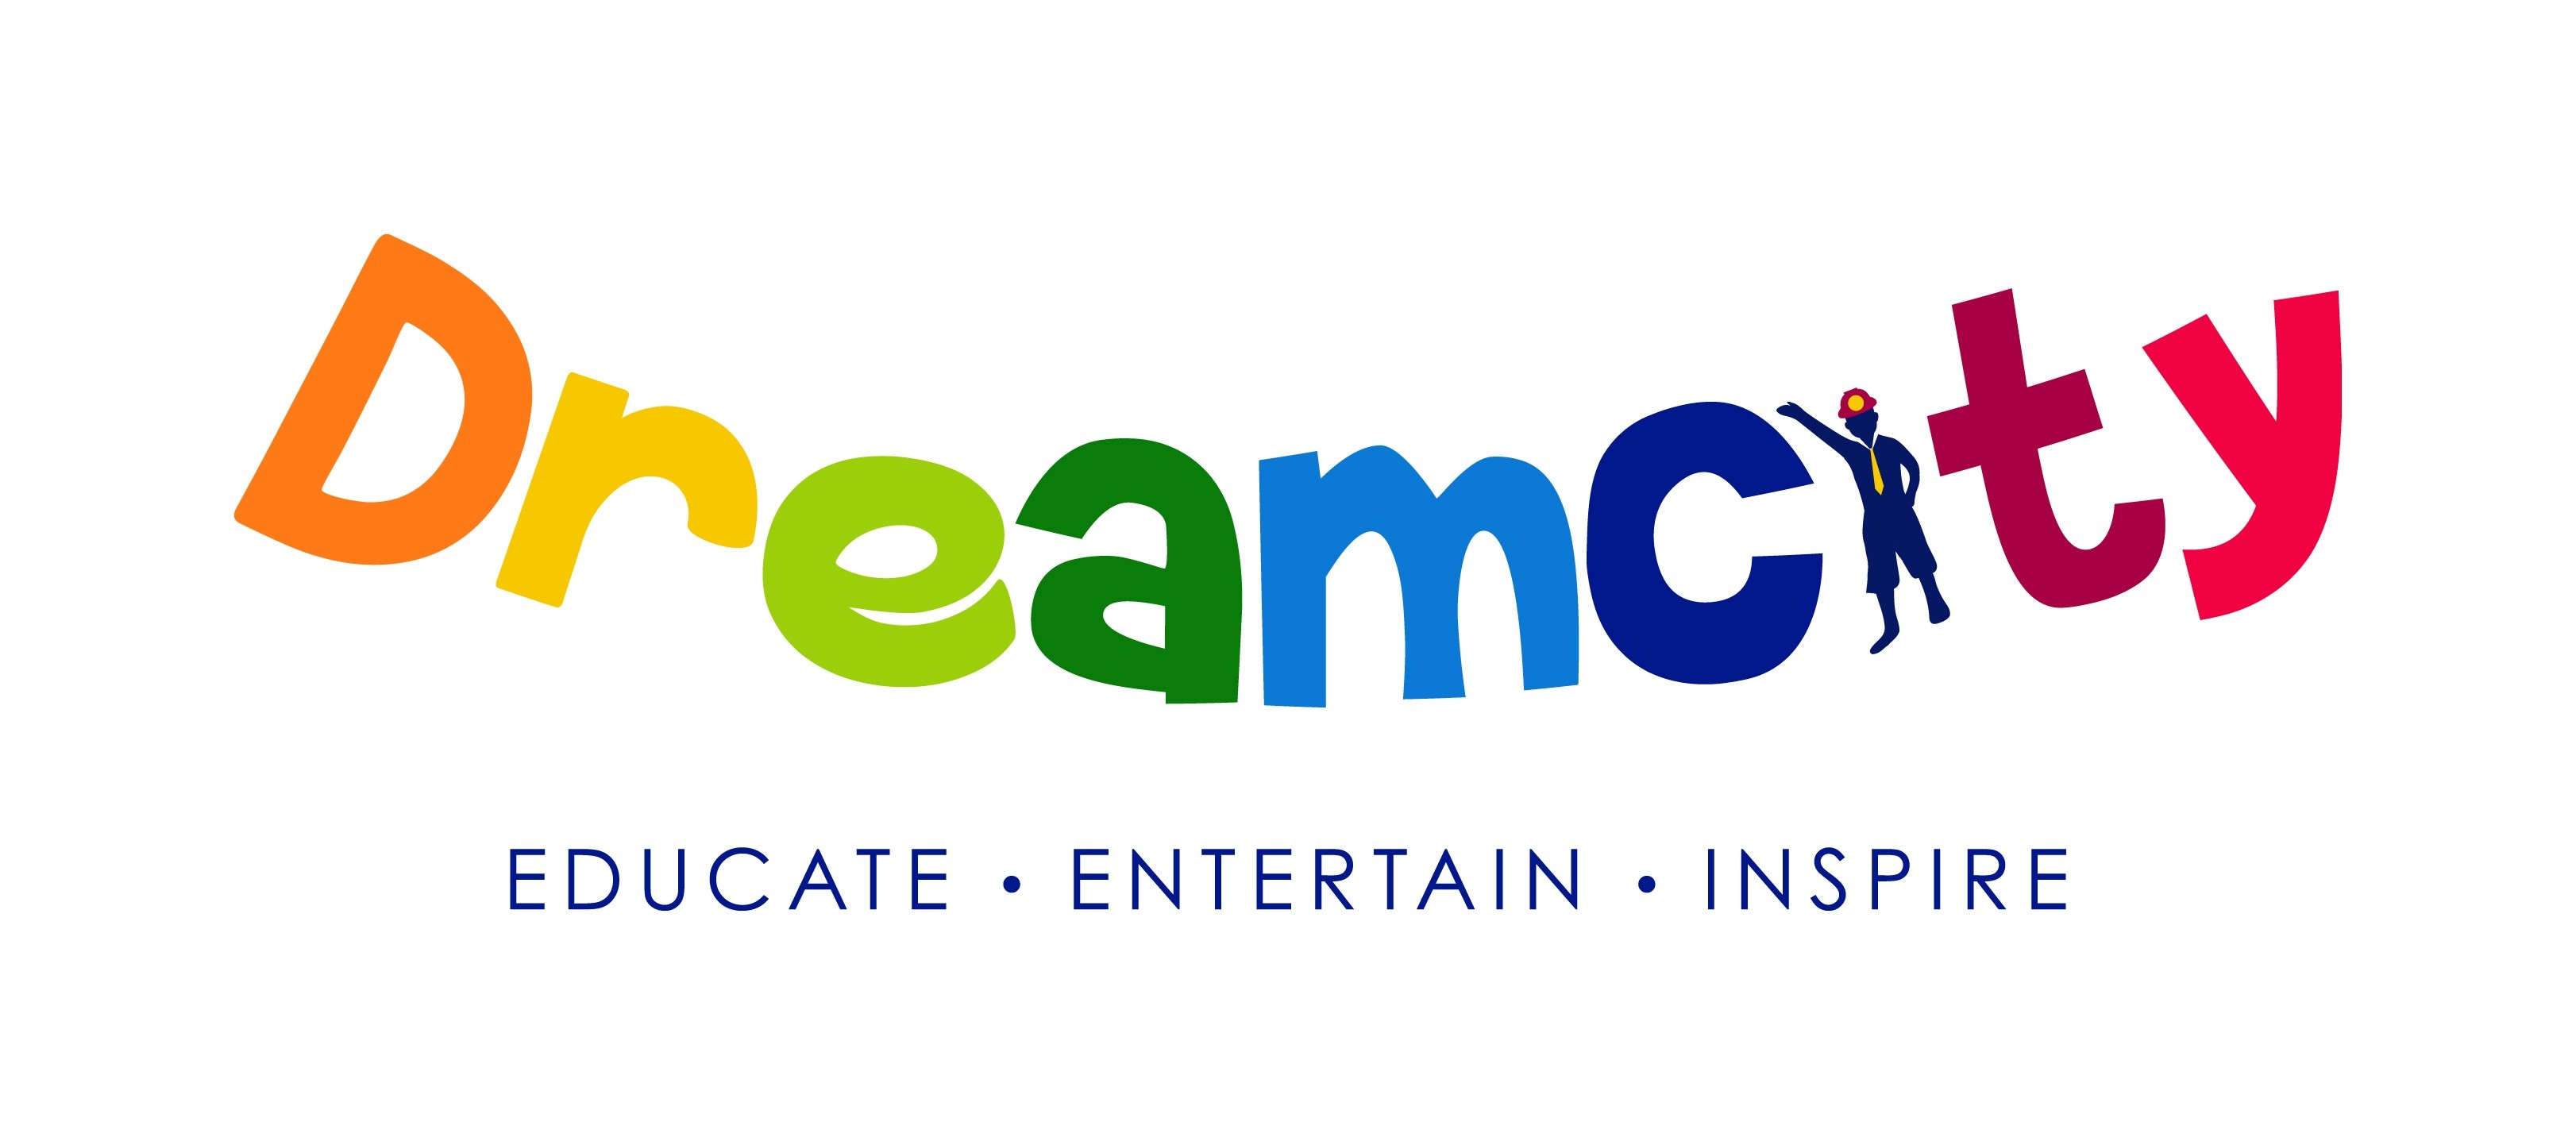 The first ever Edutainment Themepark in Australia